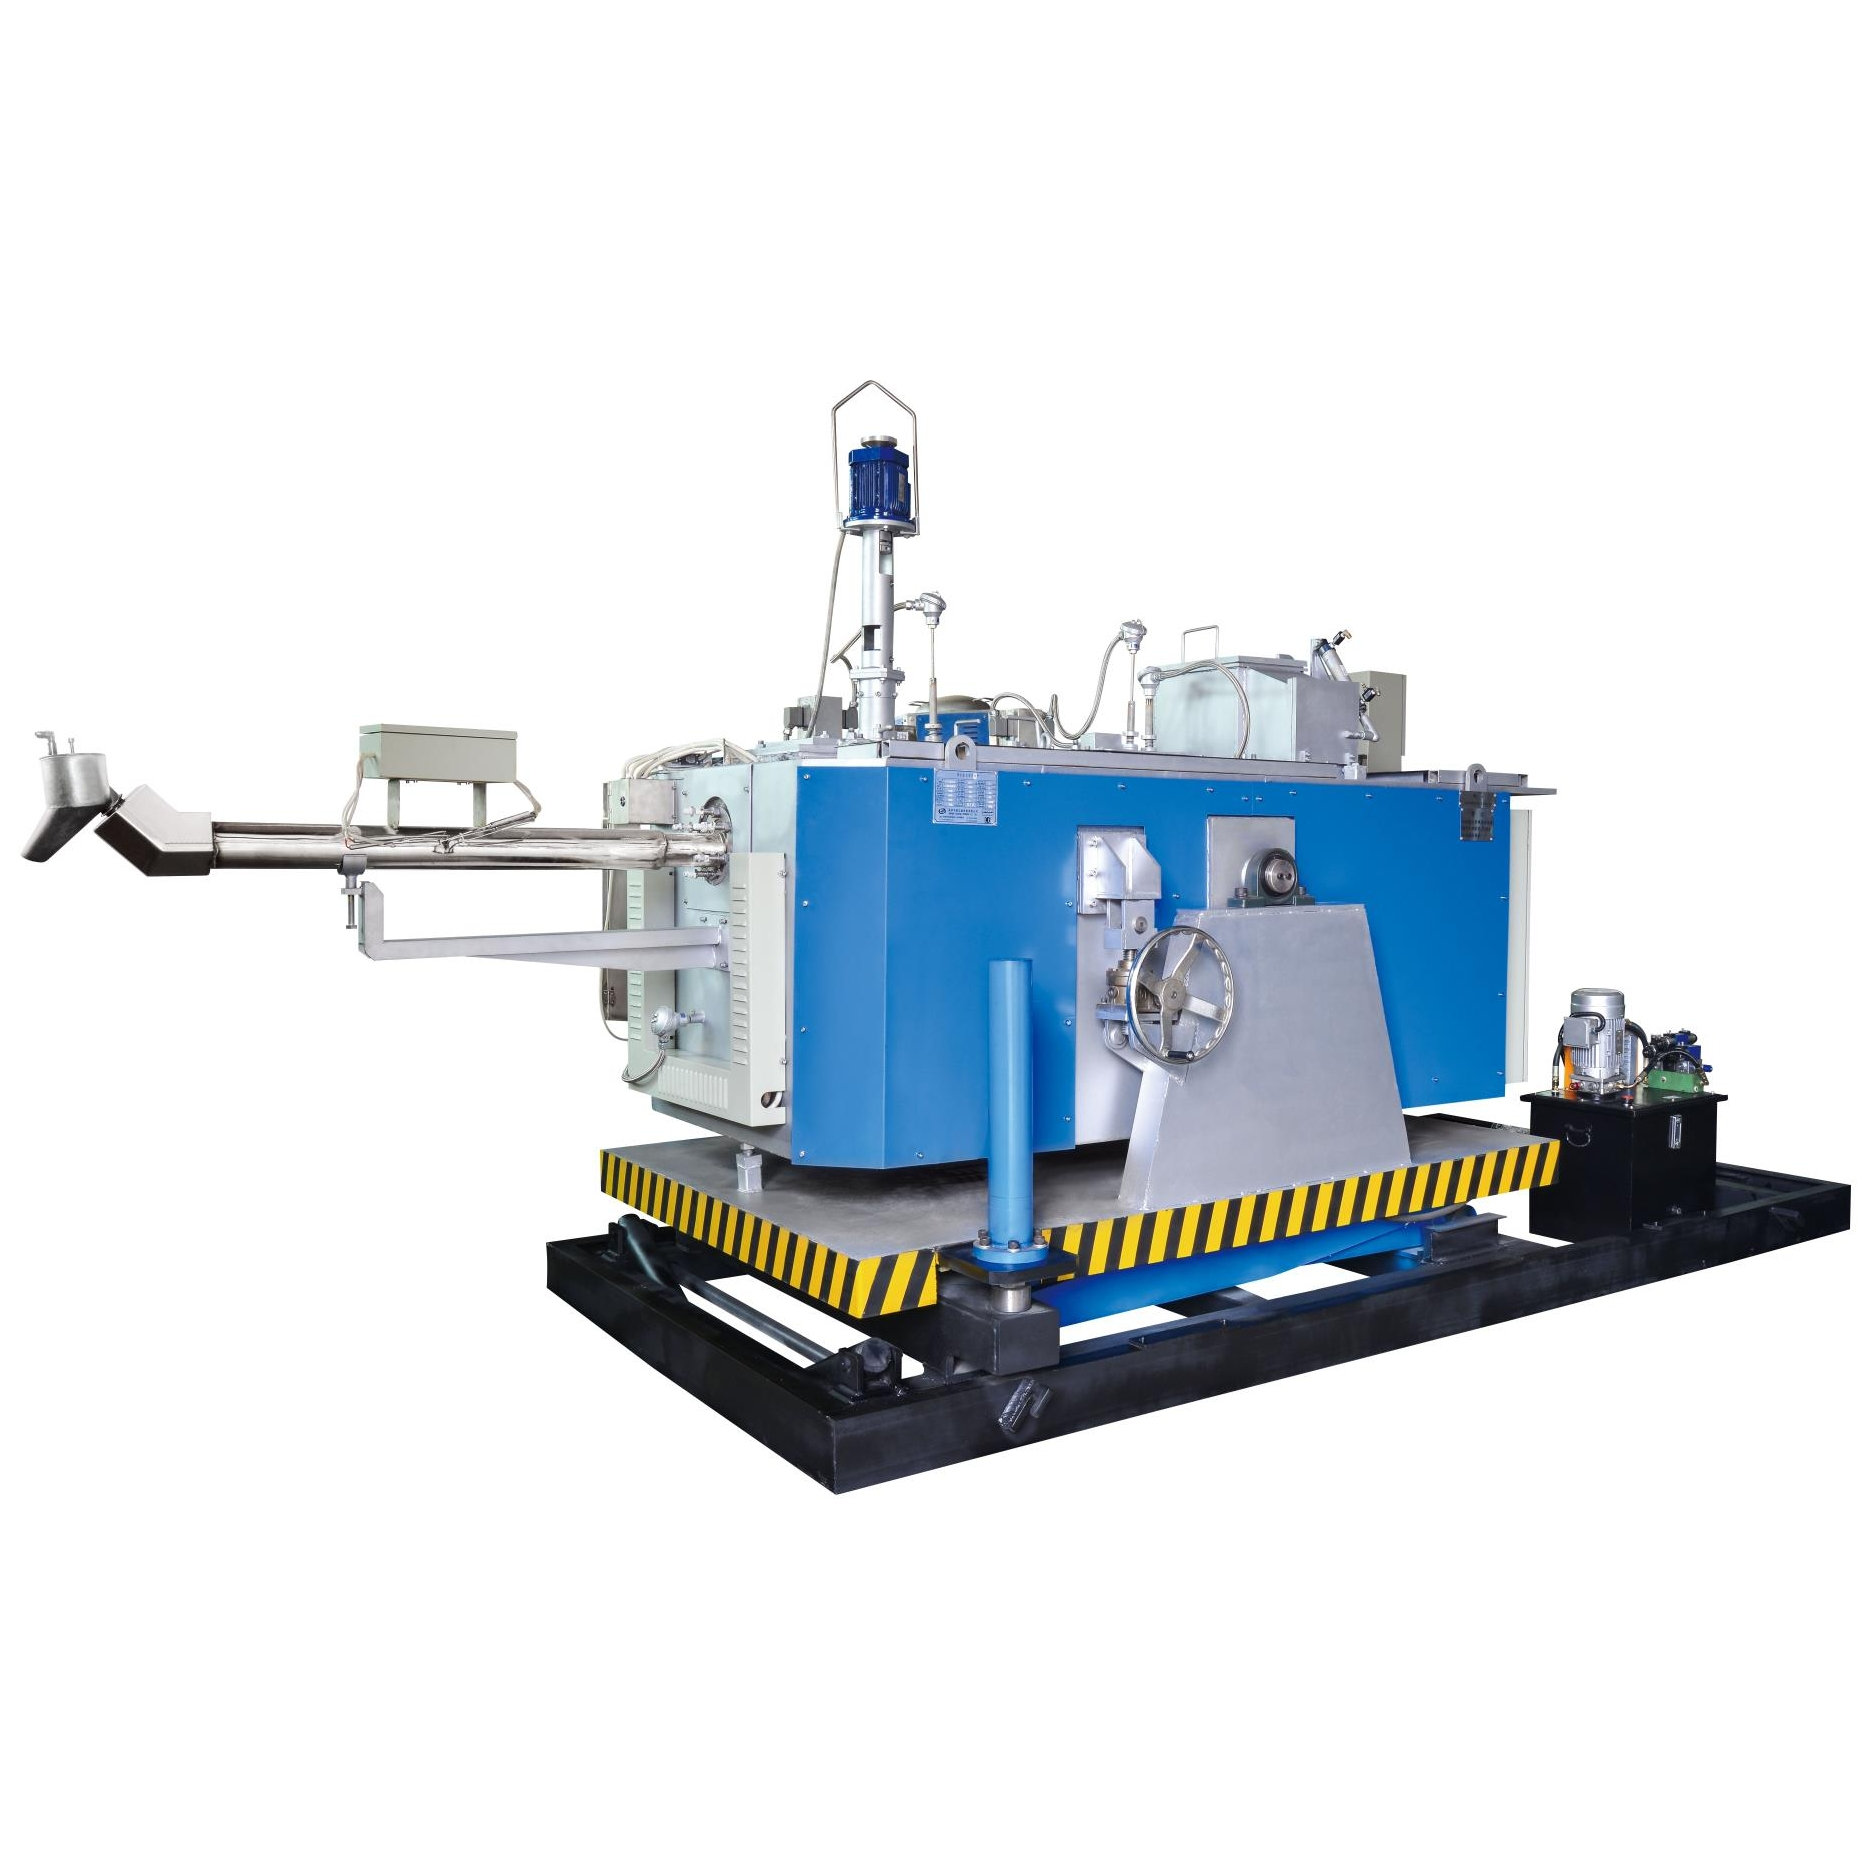 Electrical Magnesium Alloy Dosing Furnace 80kg/h